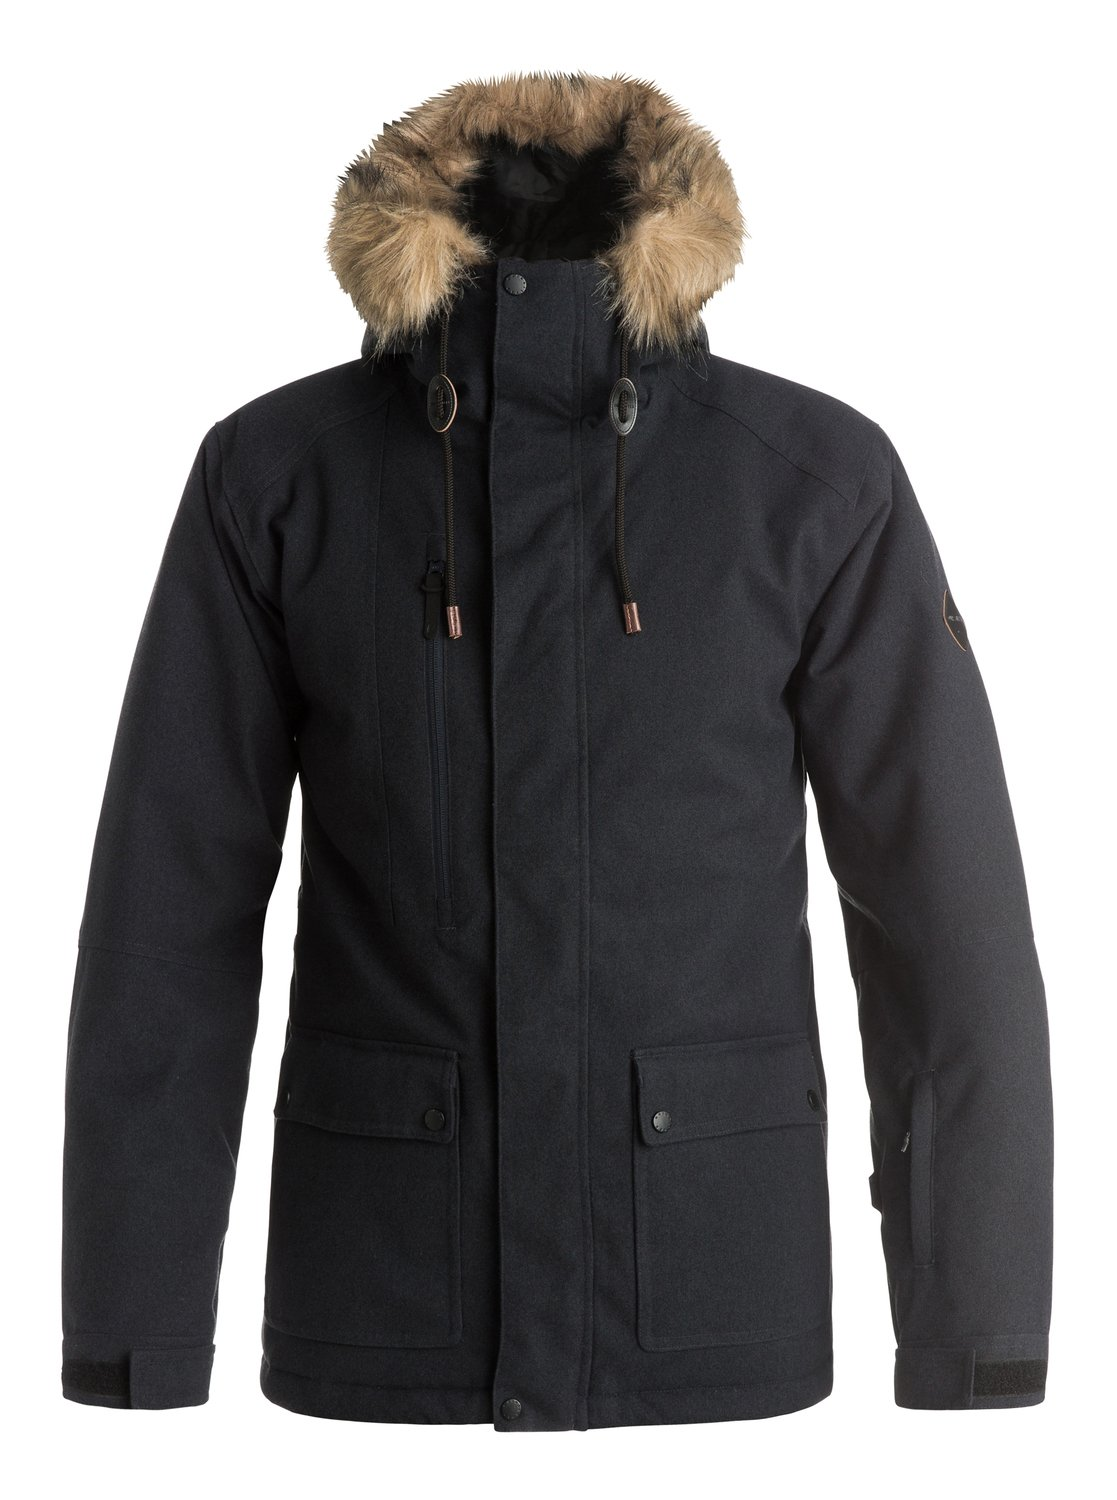 Сноубордическая куртка SelectorThe parka-inspired Selector snow jacket for men combines urban style with functional features. 10K Quiksilver DryFlight® technology for reliable waterproof and breathable protection, an easy-to-wear regular fit allows space to layer and Warmflight® insulation level 3 with a sherpa, chambray and lightweight, breathable taffeta lining keeps it cosy on the coldest winter days.<br>